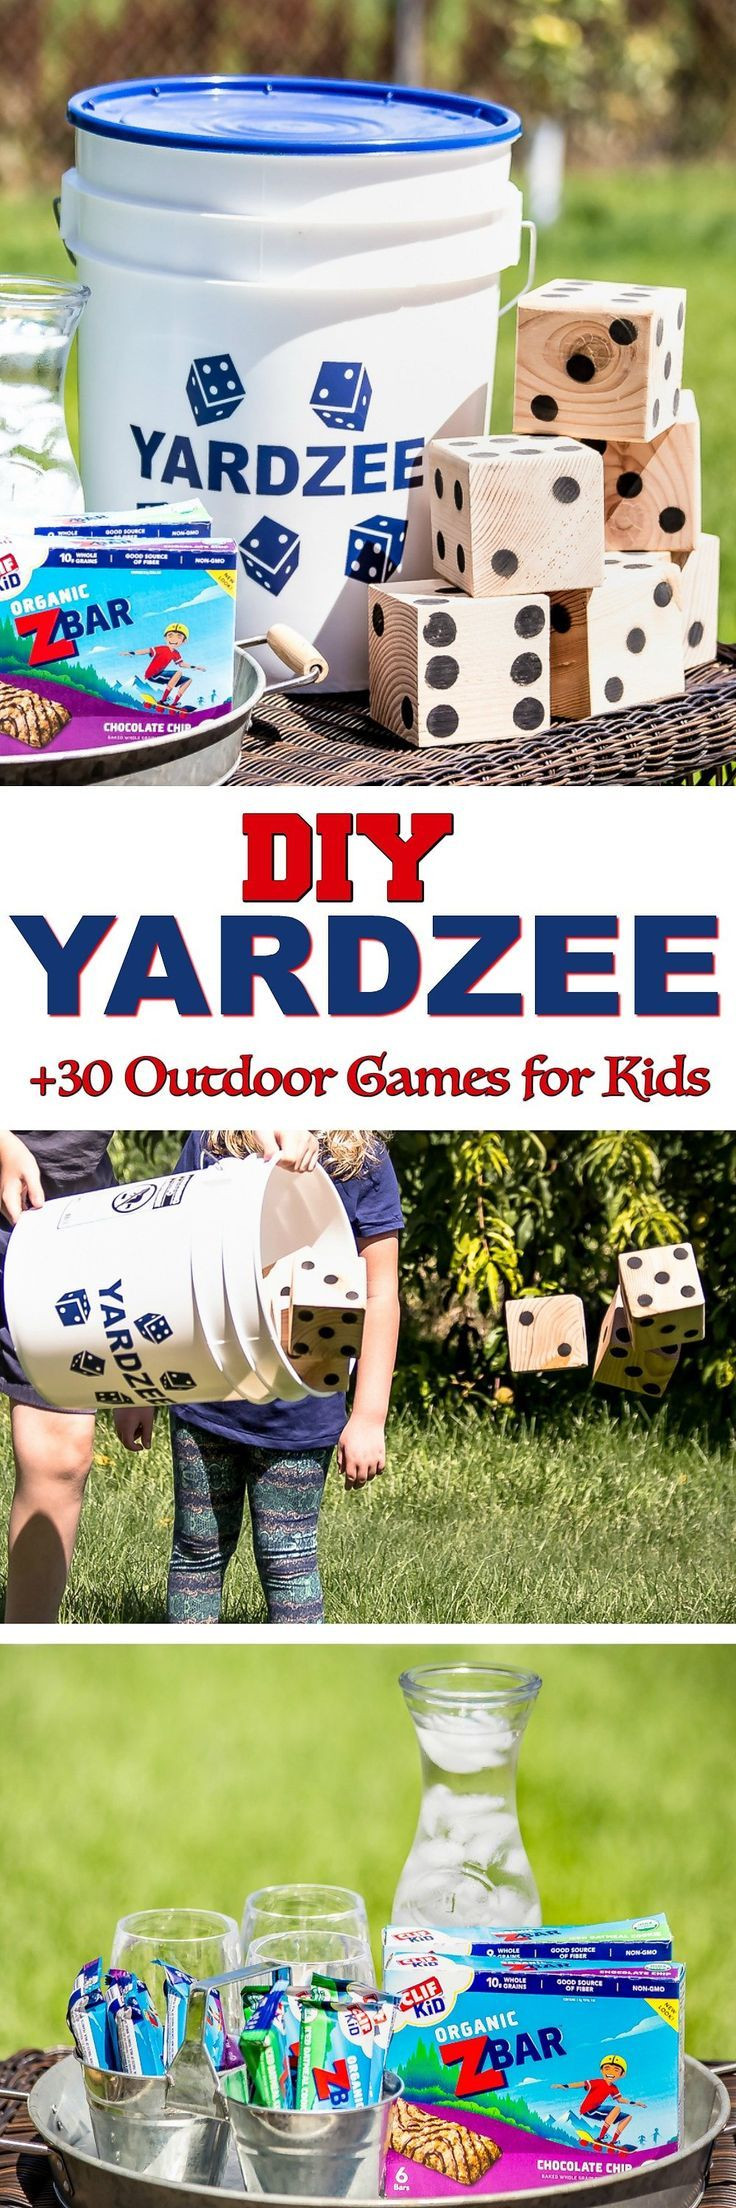 DIY Games For Kids  Classic Outdoor Games for Kids DIY Yardzee tutorial